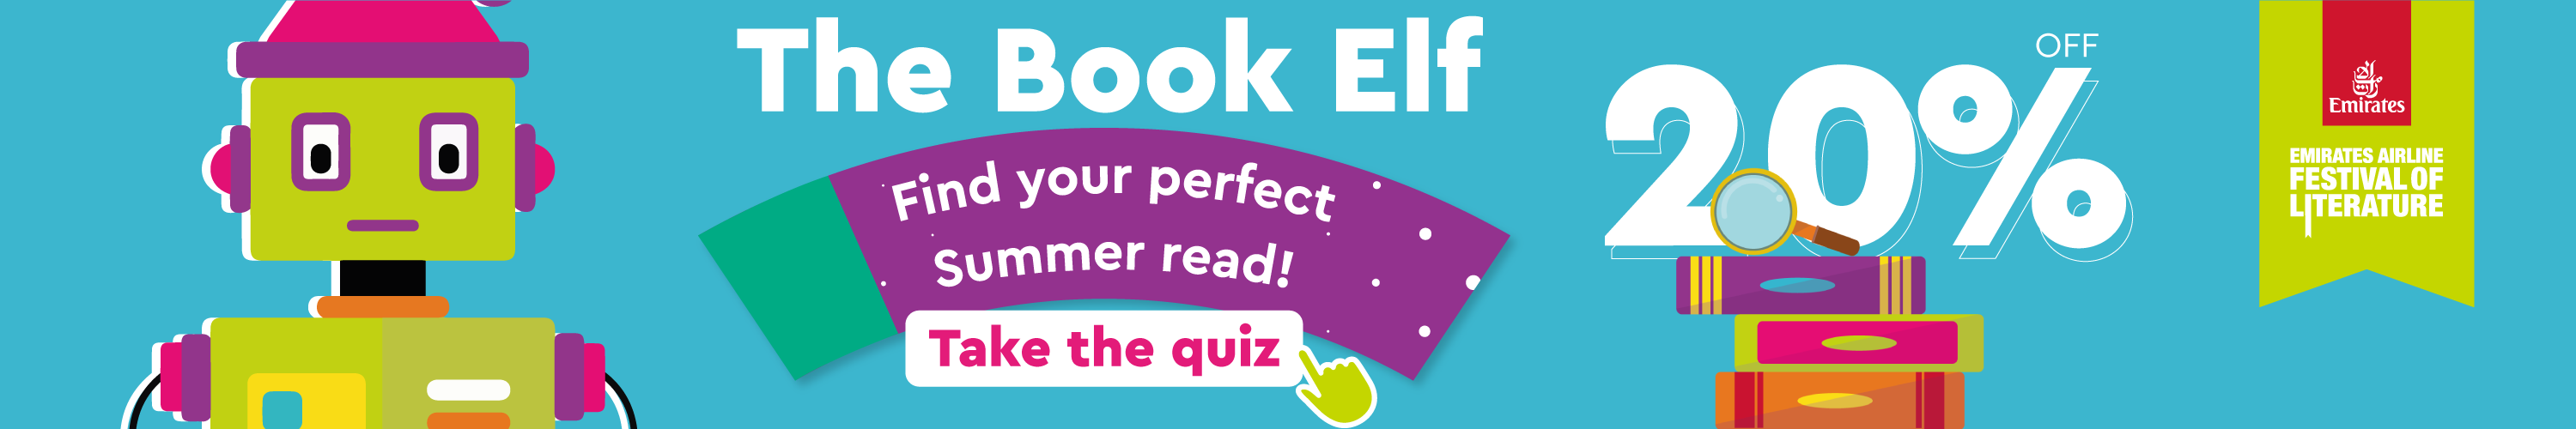 The book elf homepage banner